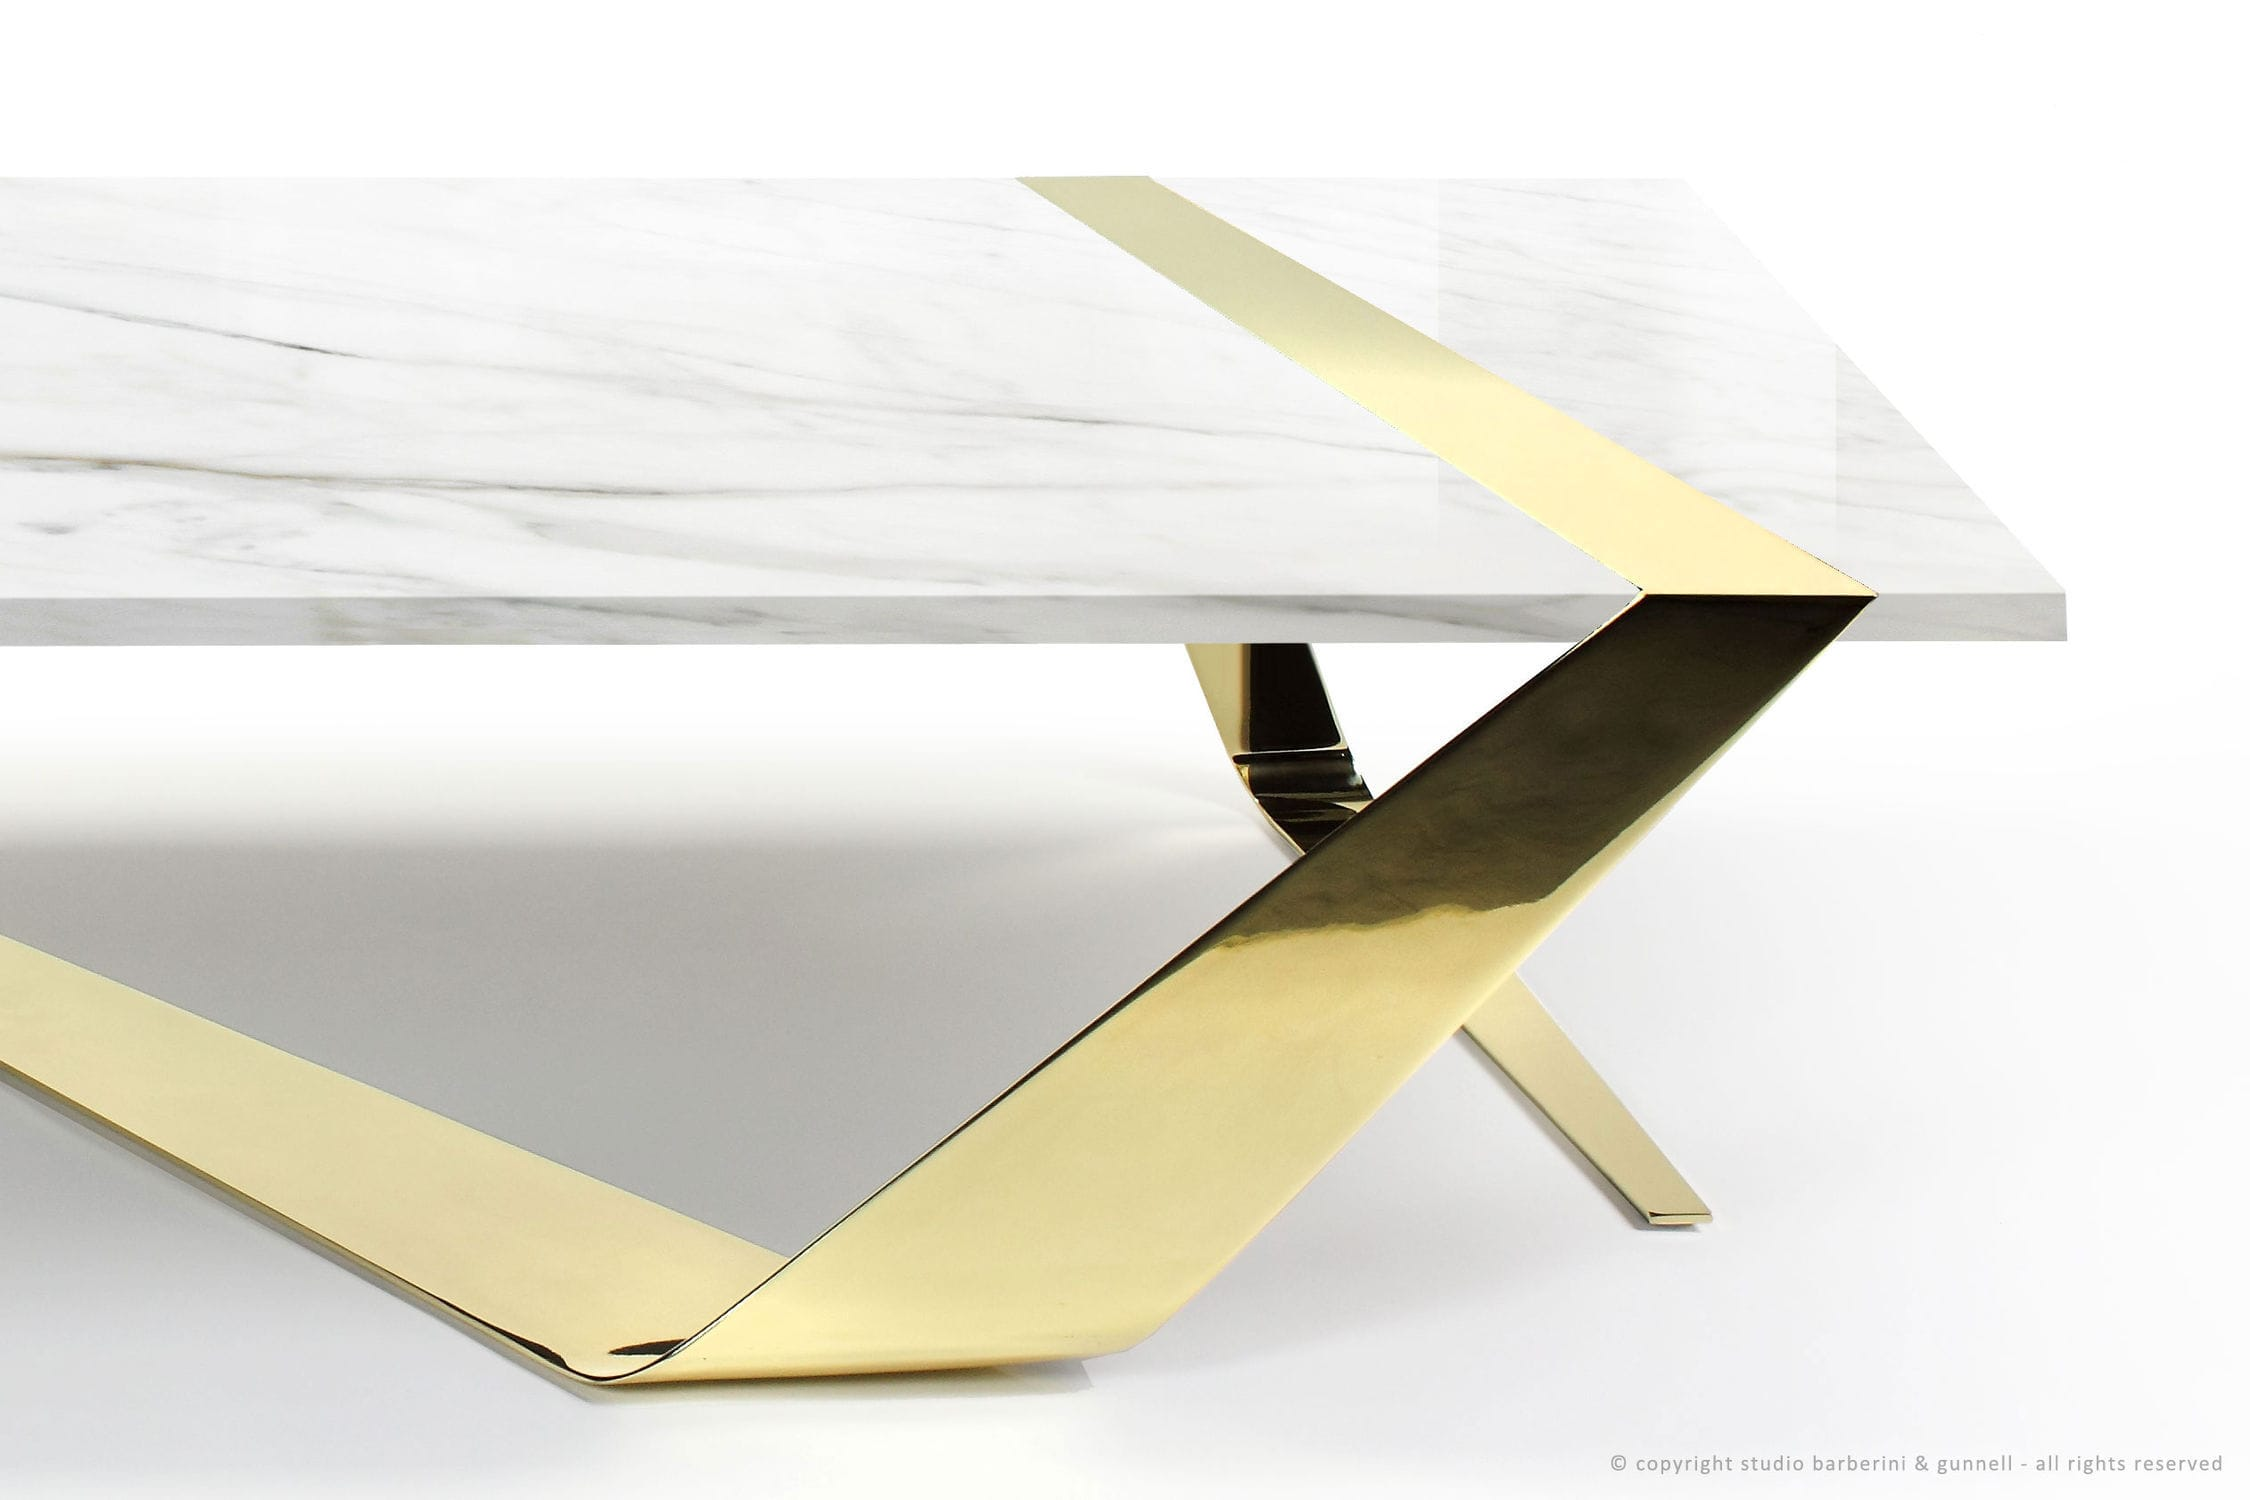 Green Origami Living Table by Patricia Urquiola Budri - Artemest | 1500x2250